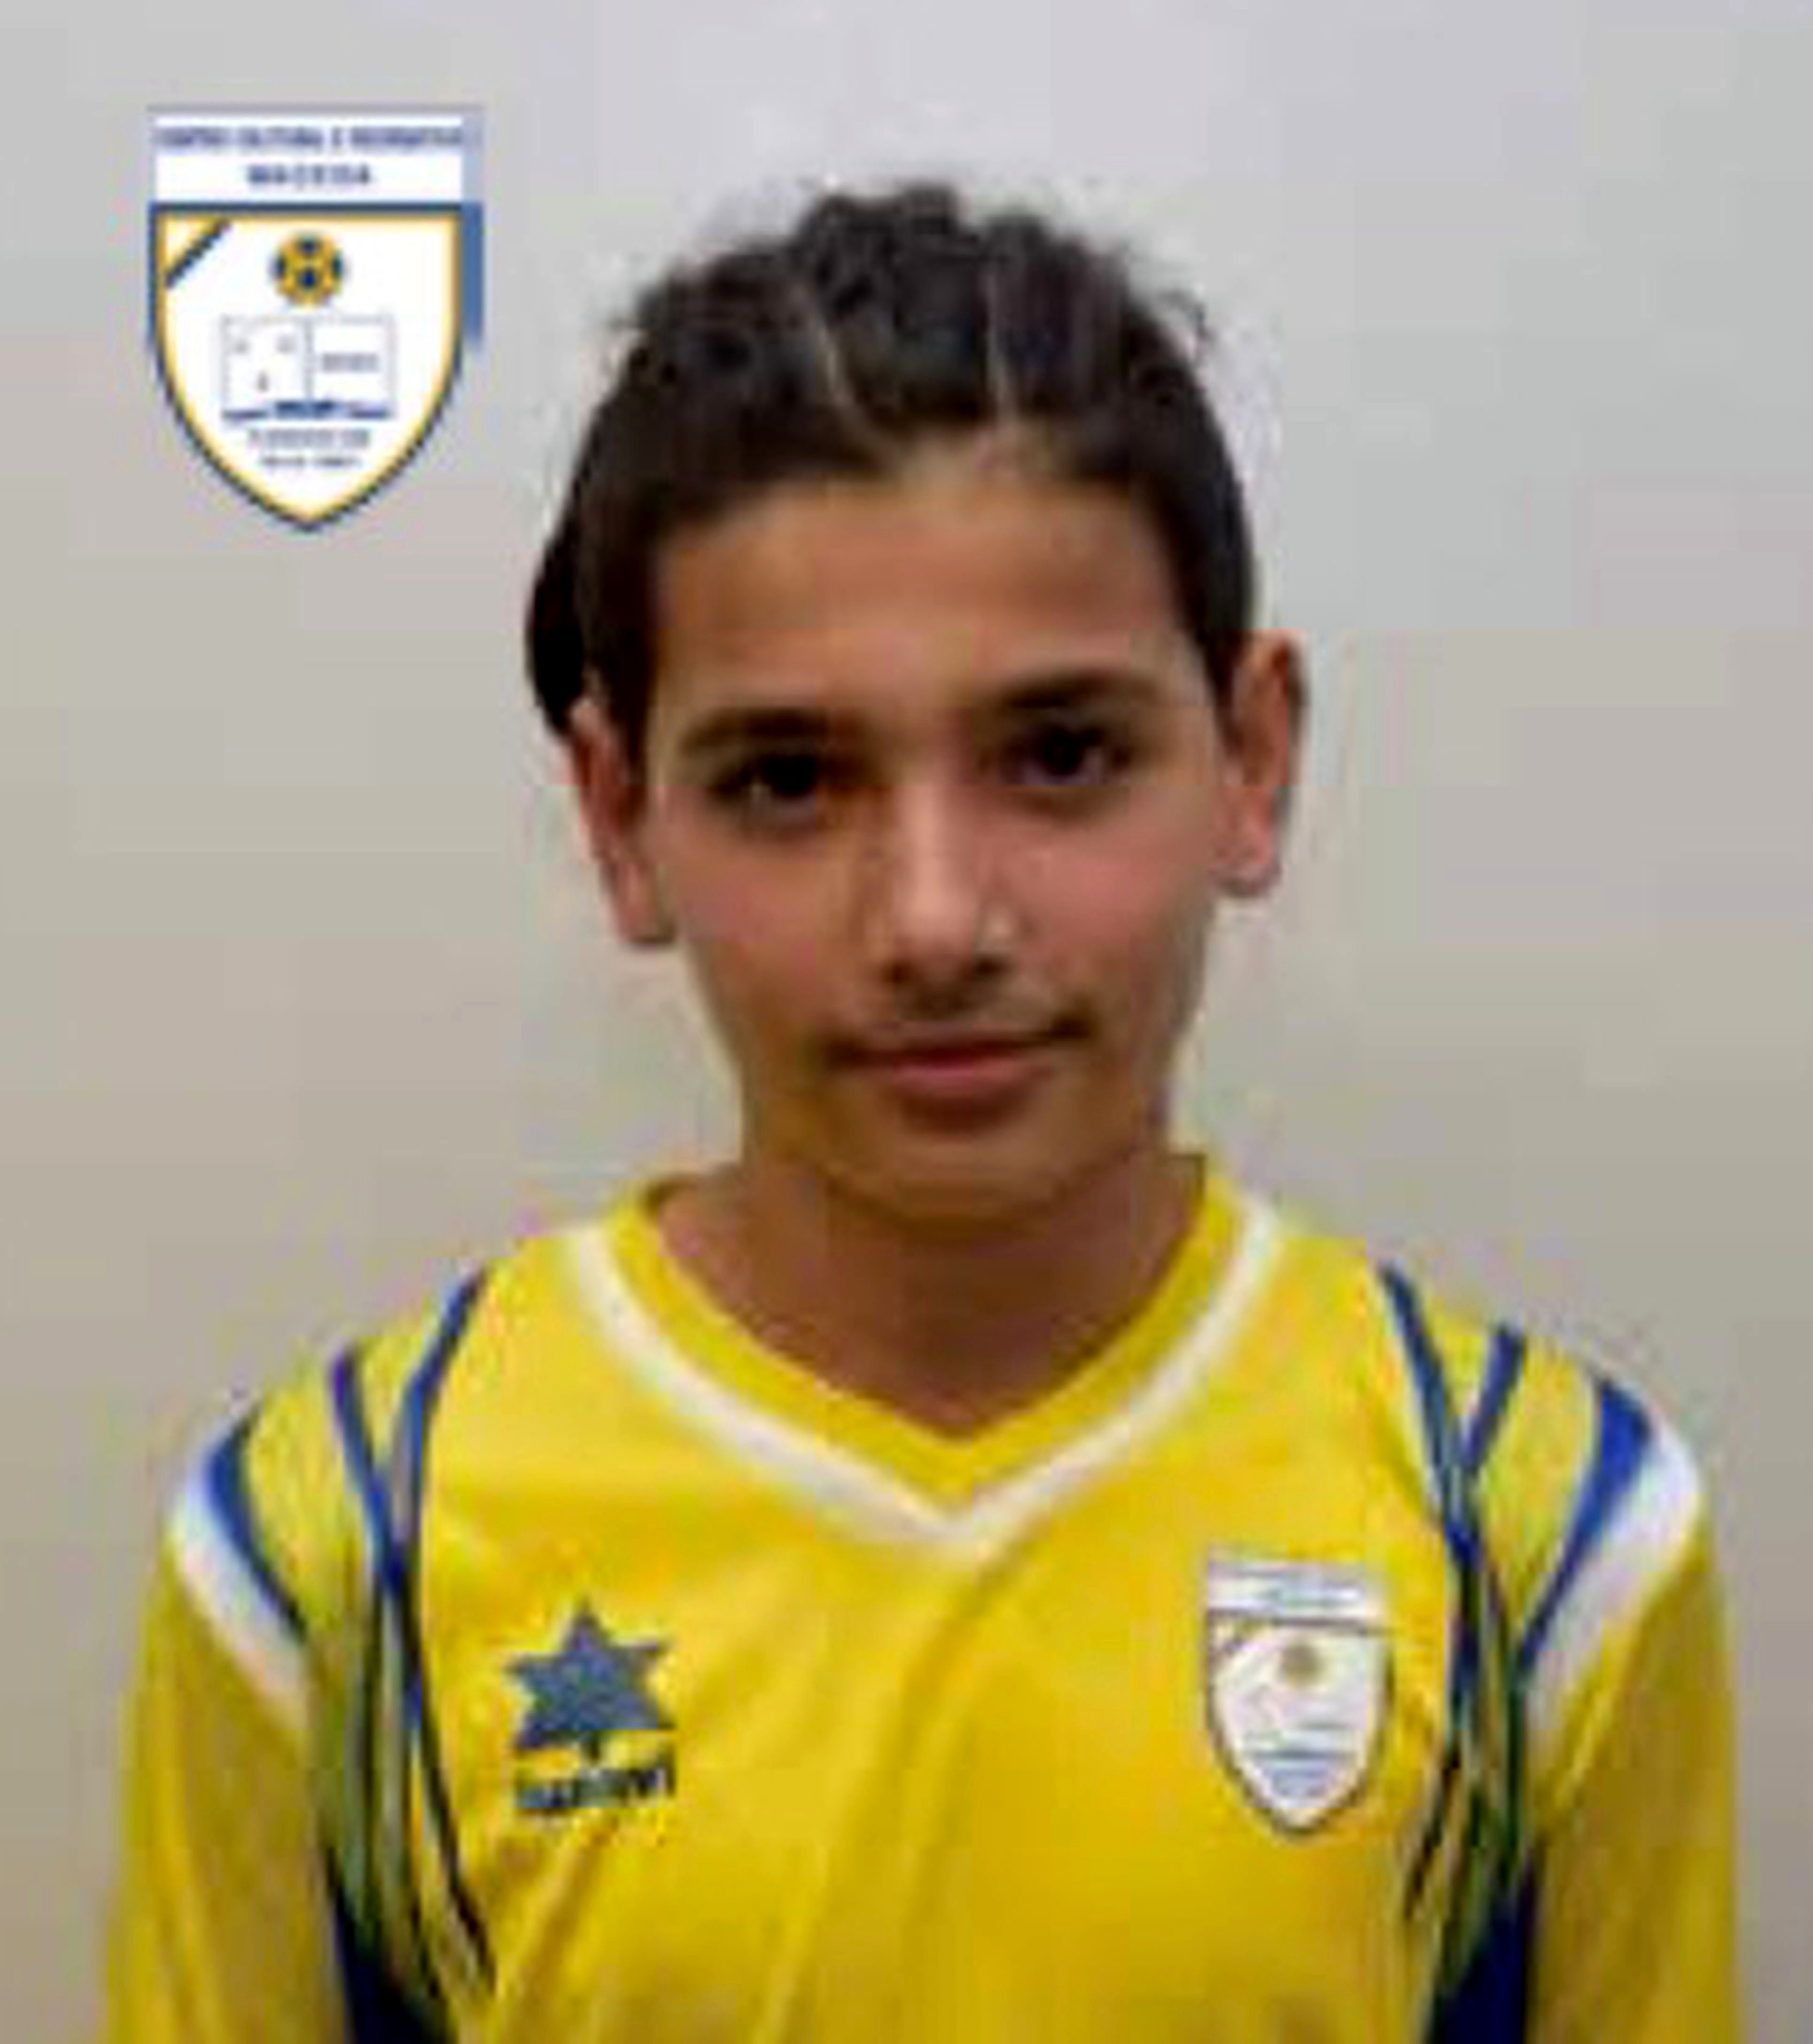 Vitor Godinho, 14, tragically died in a hospital near Porto in the early hours of Sunday morning after falling ill with the virus